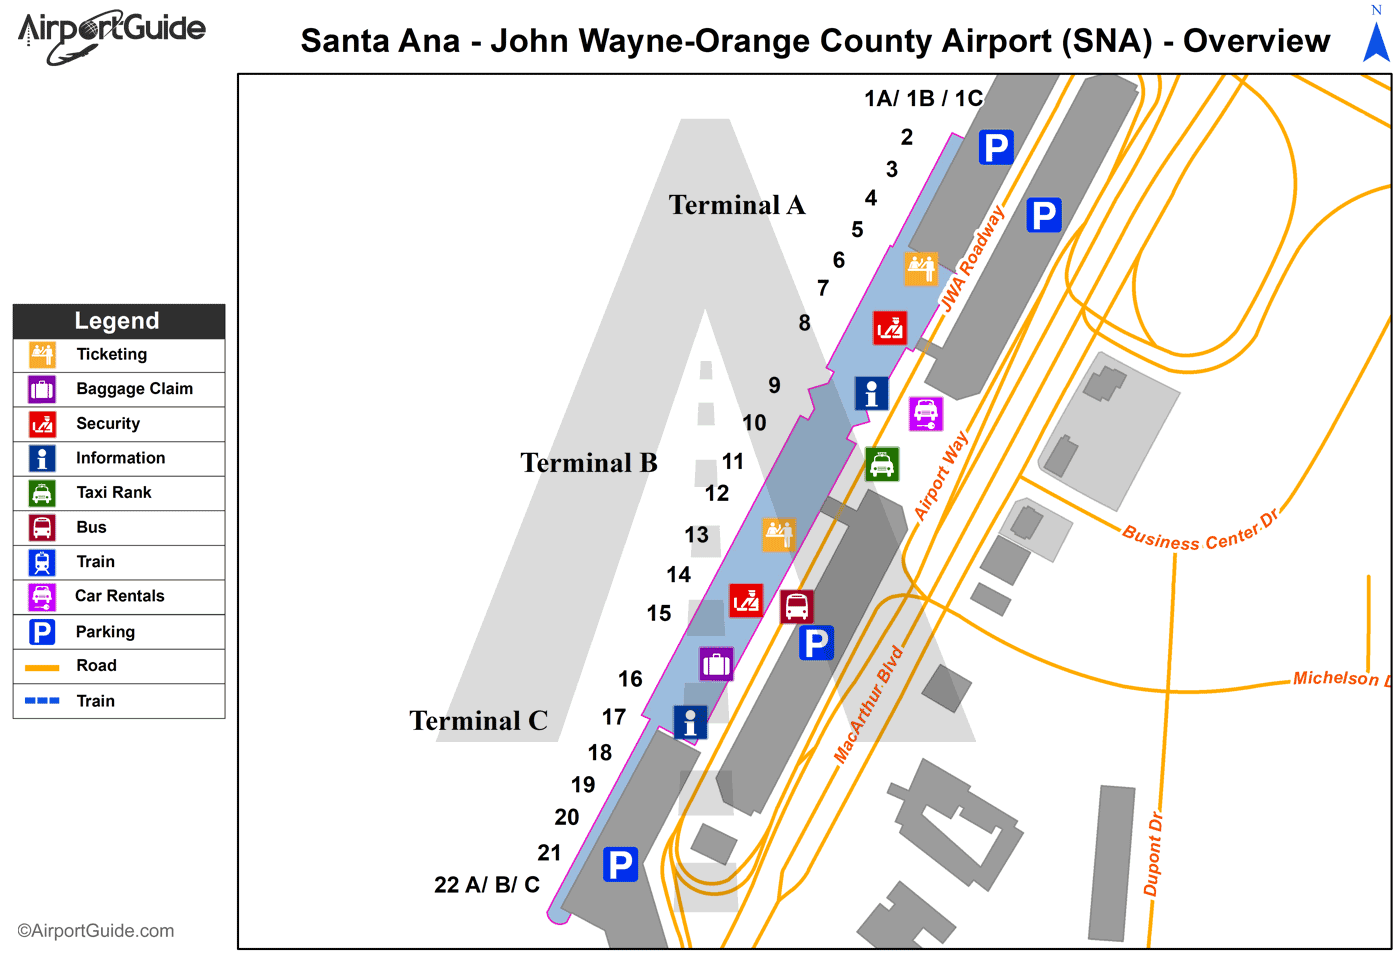 Santa Ana - San Bernardino International (SNA) Airport Terminal Map - Overview